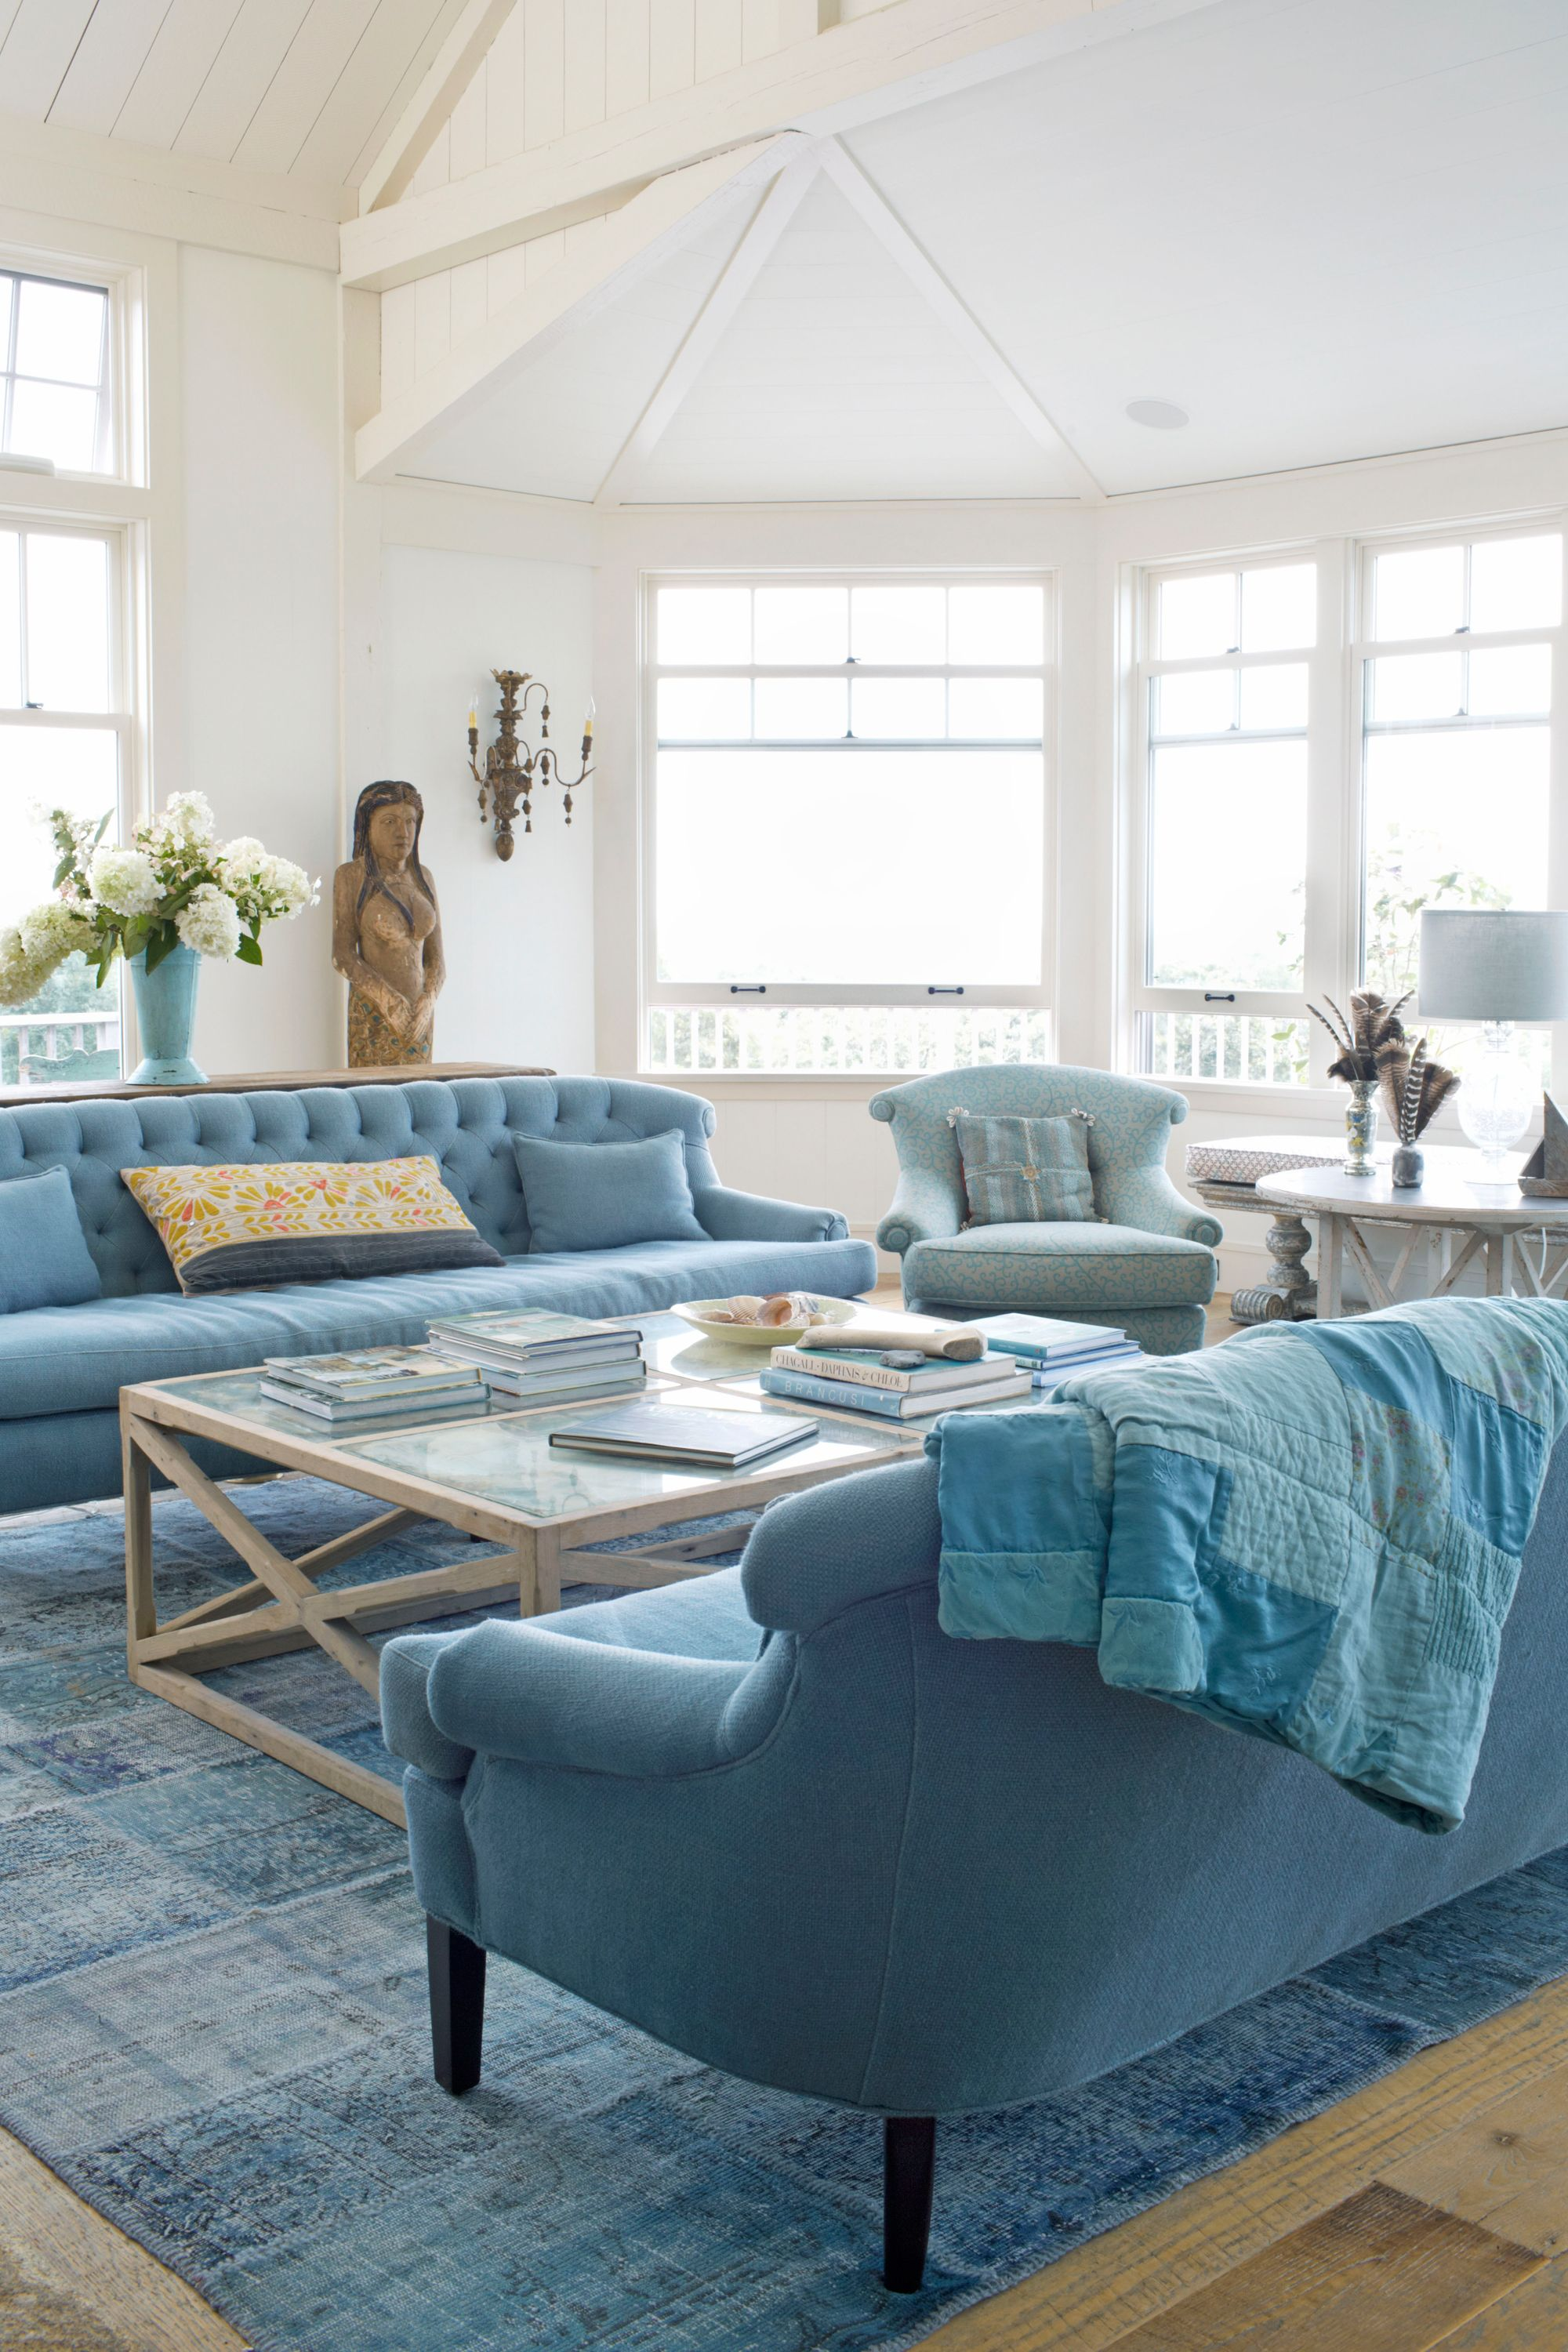 Sofa Throw Ideas 25 Best Blue Rooms Decorating Ideas For Blue Walls And Home Decor